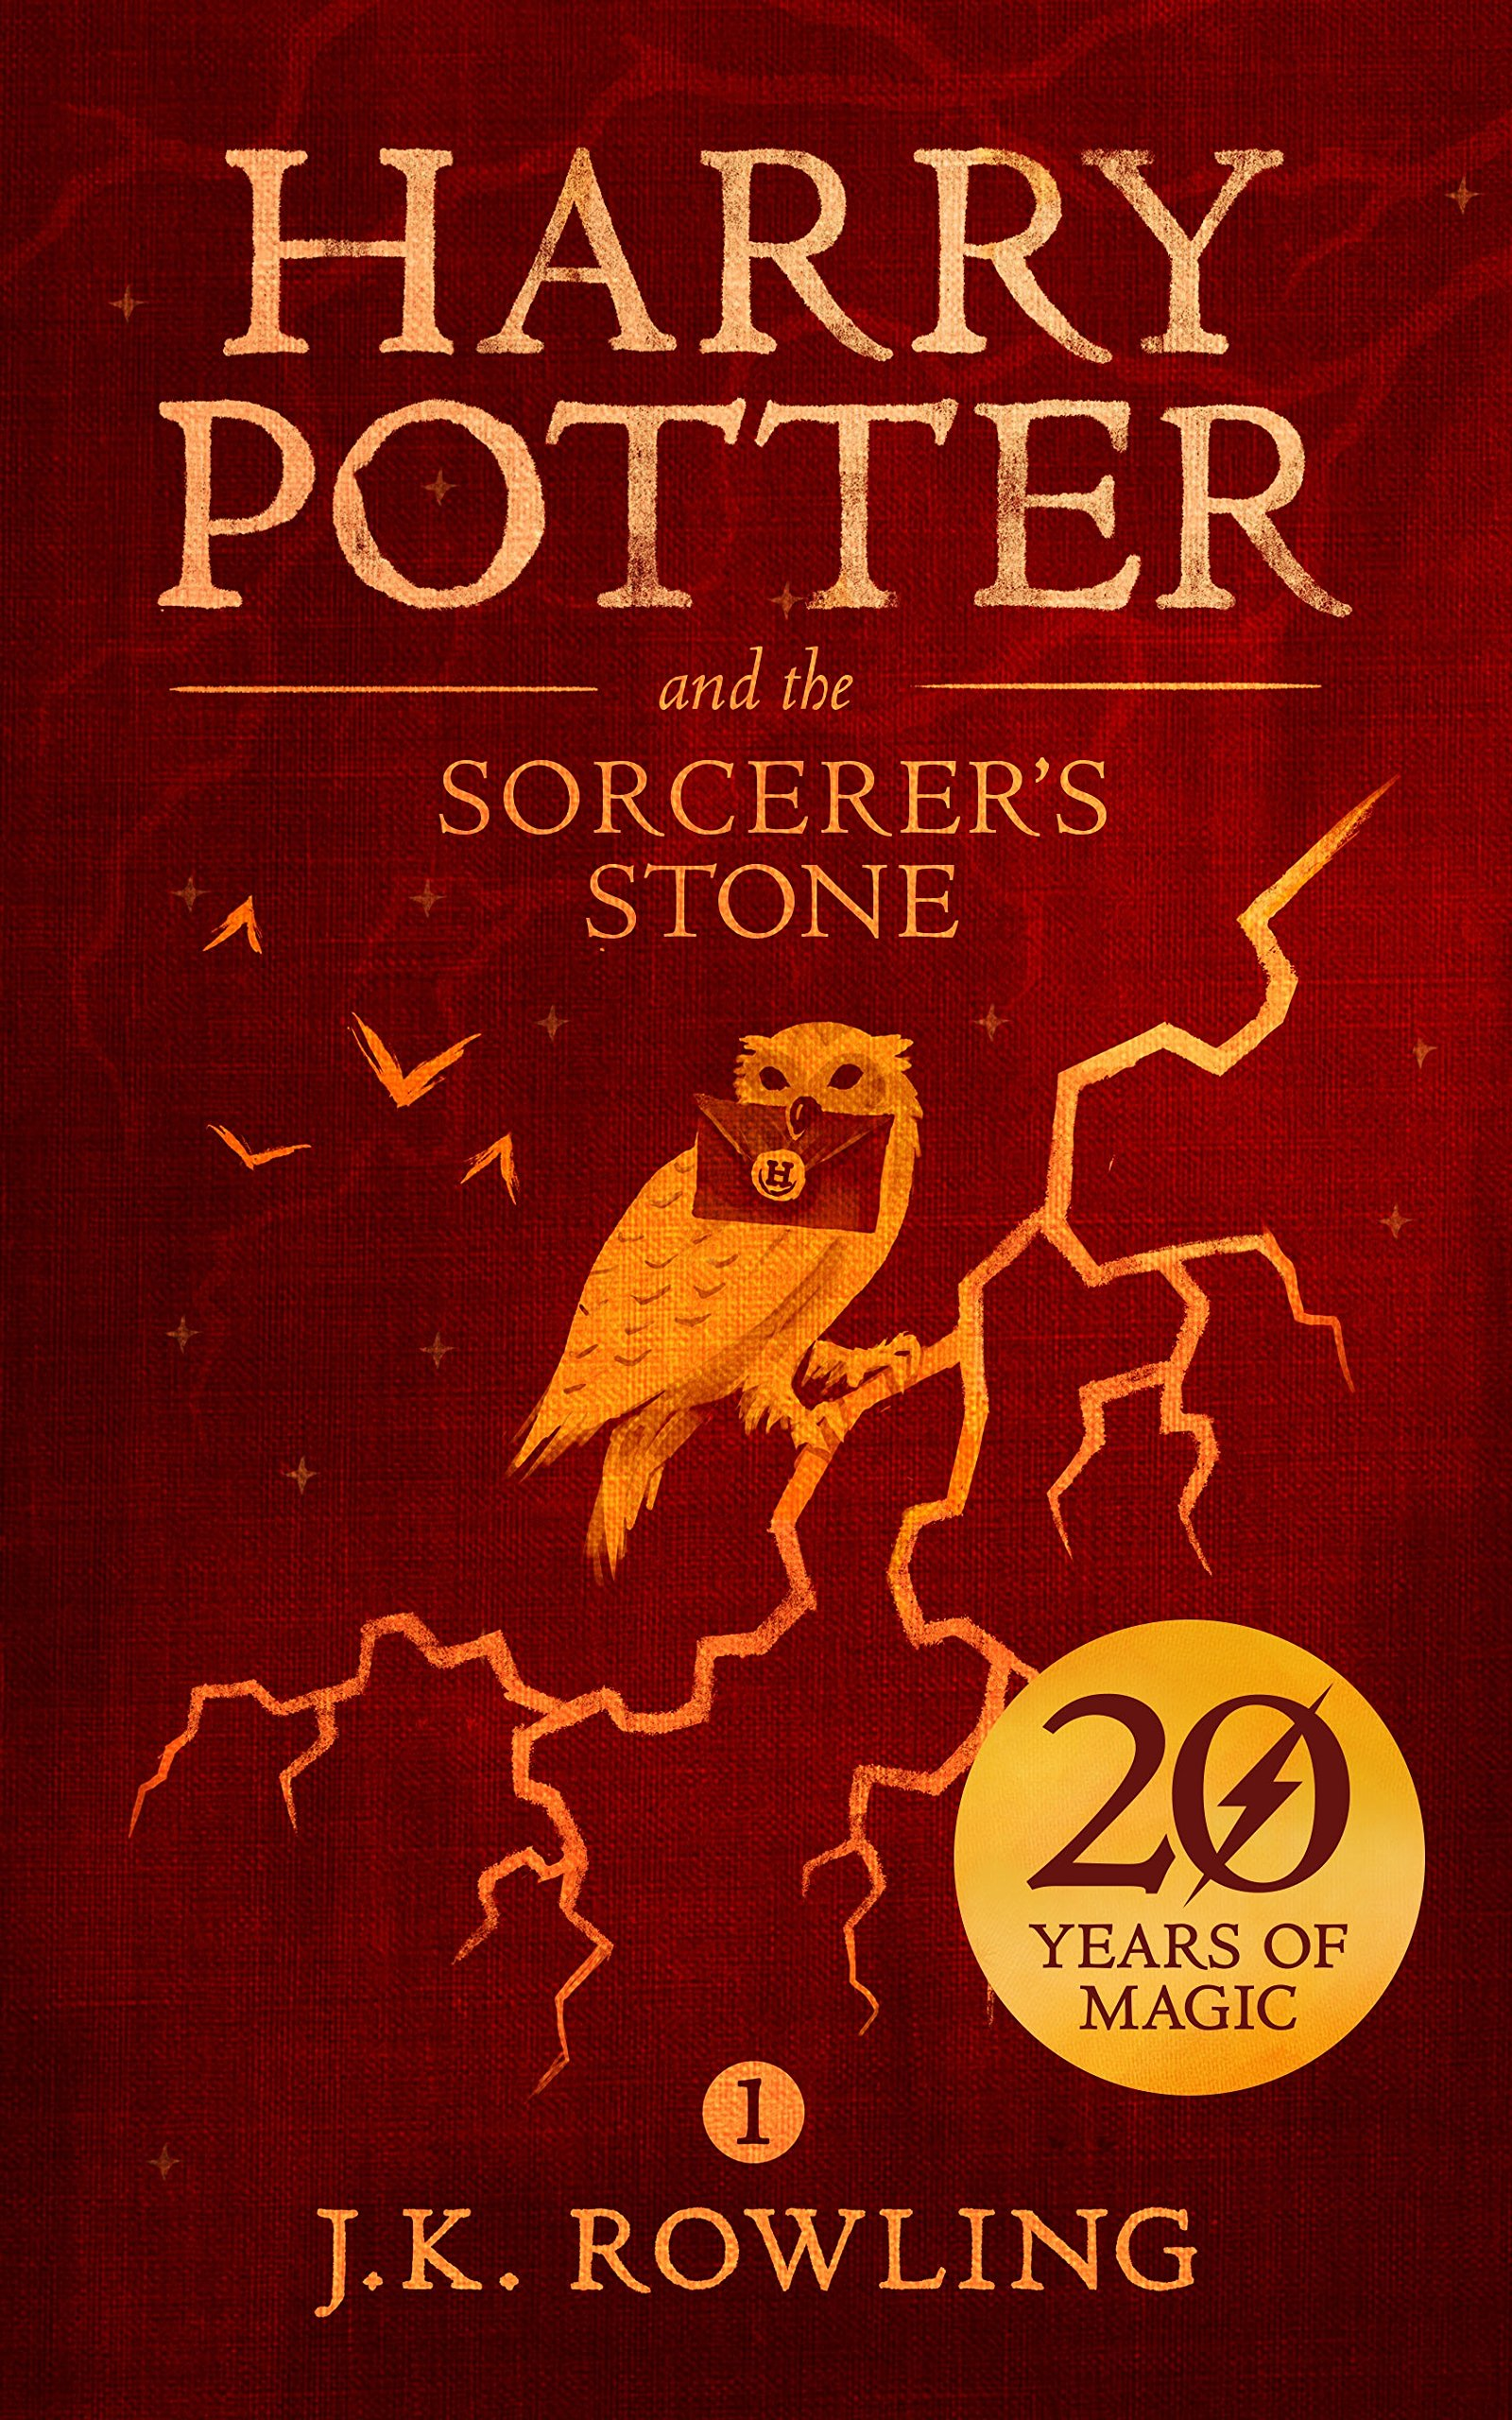 Amazon com: Harry Potter and the Sorcerer's Stone eBook